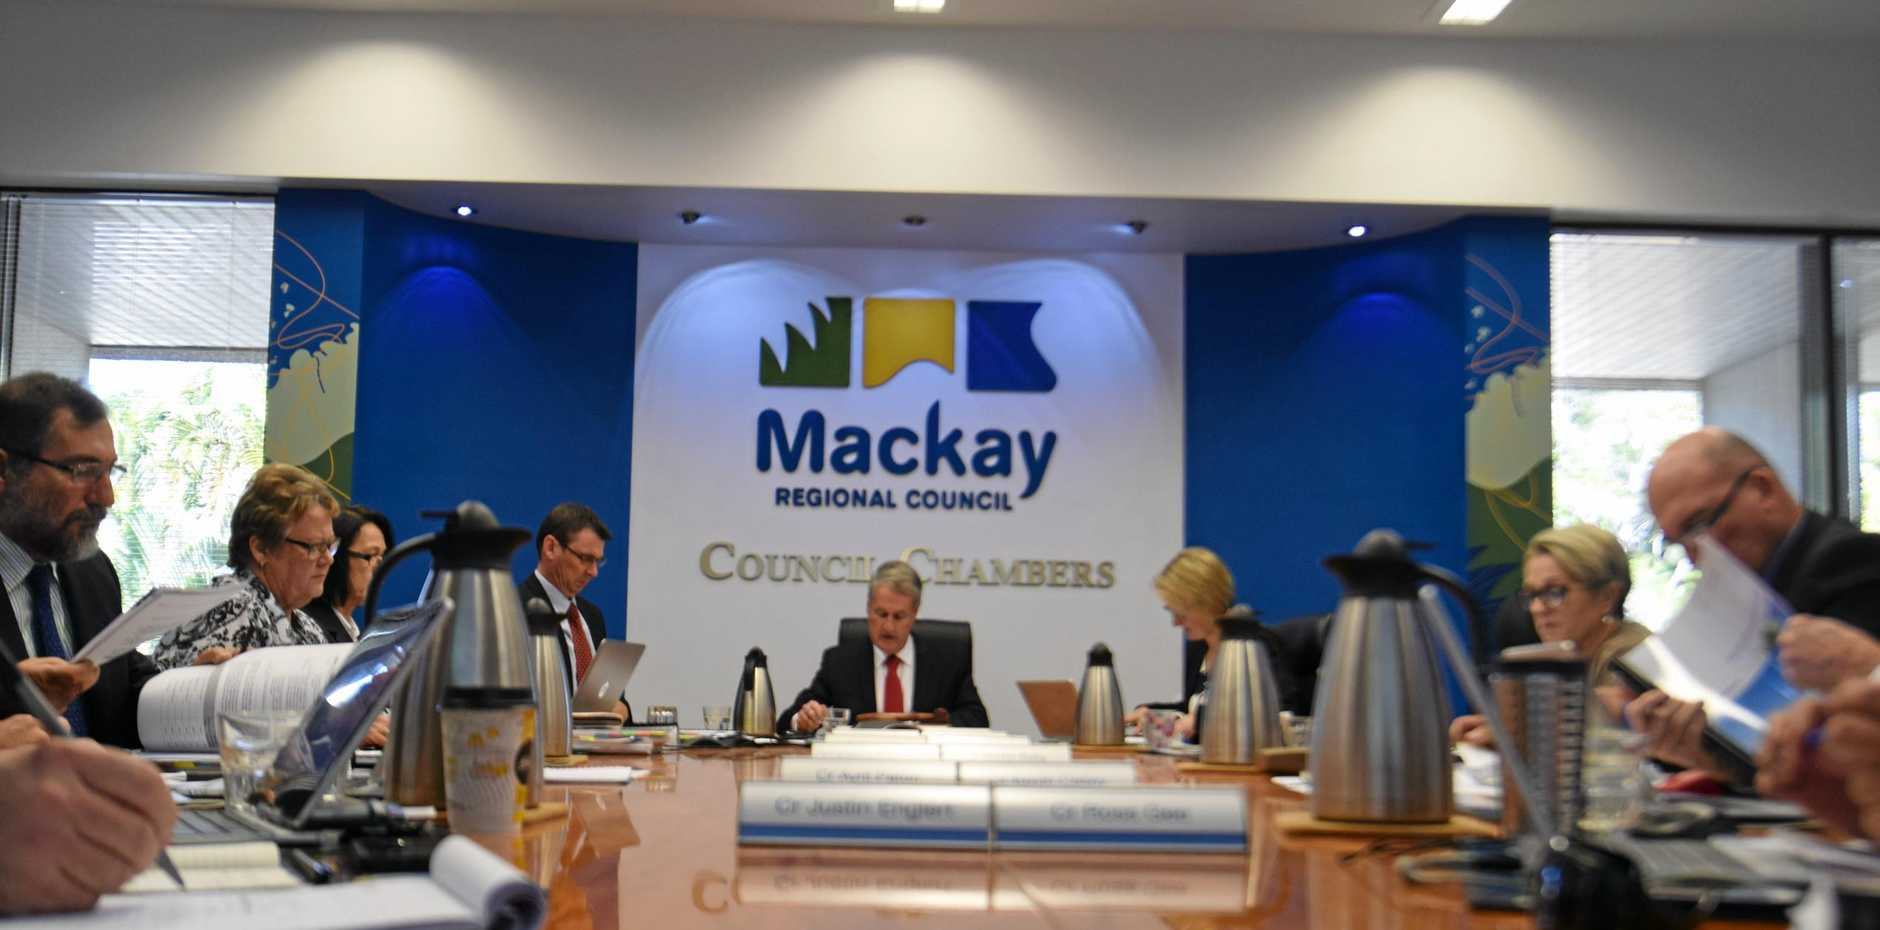 Mackay Regional councillors yesterday, for the second attempt to pass the 2018/19 budget